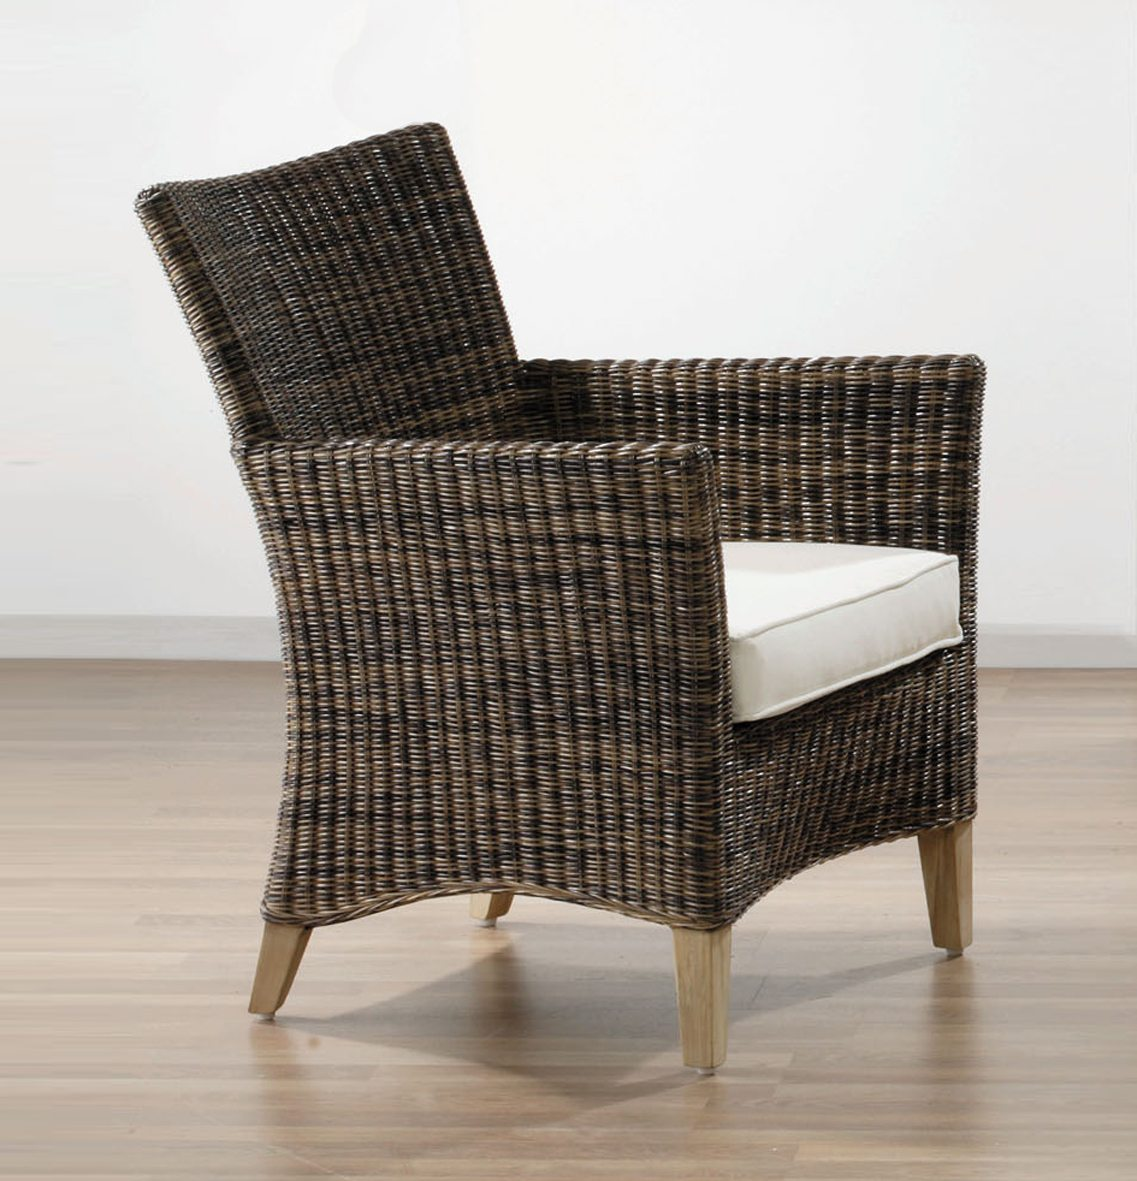 Wicker Rattan Chair How Do You Build A Wicker Furniture Diy